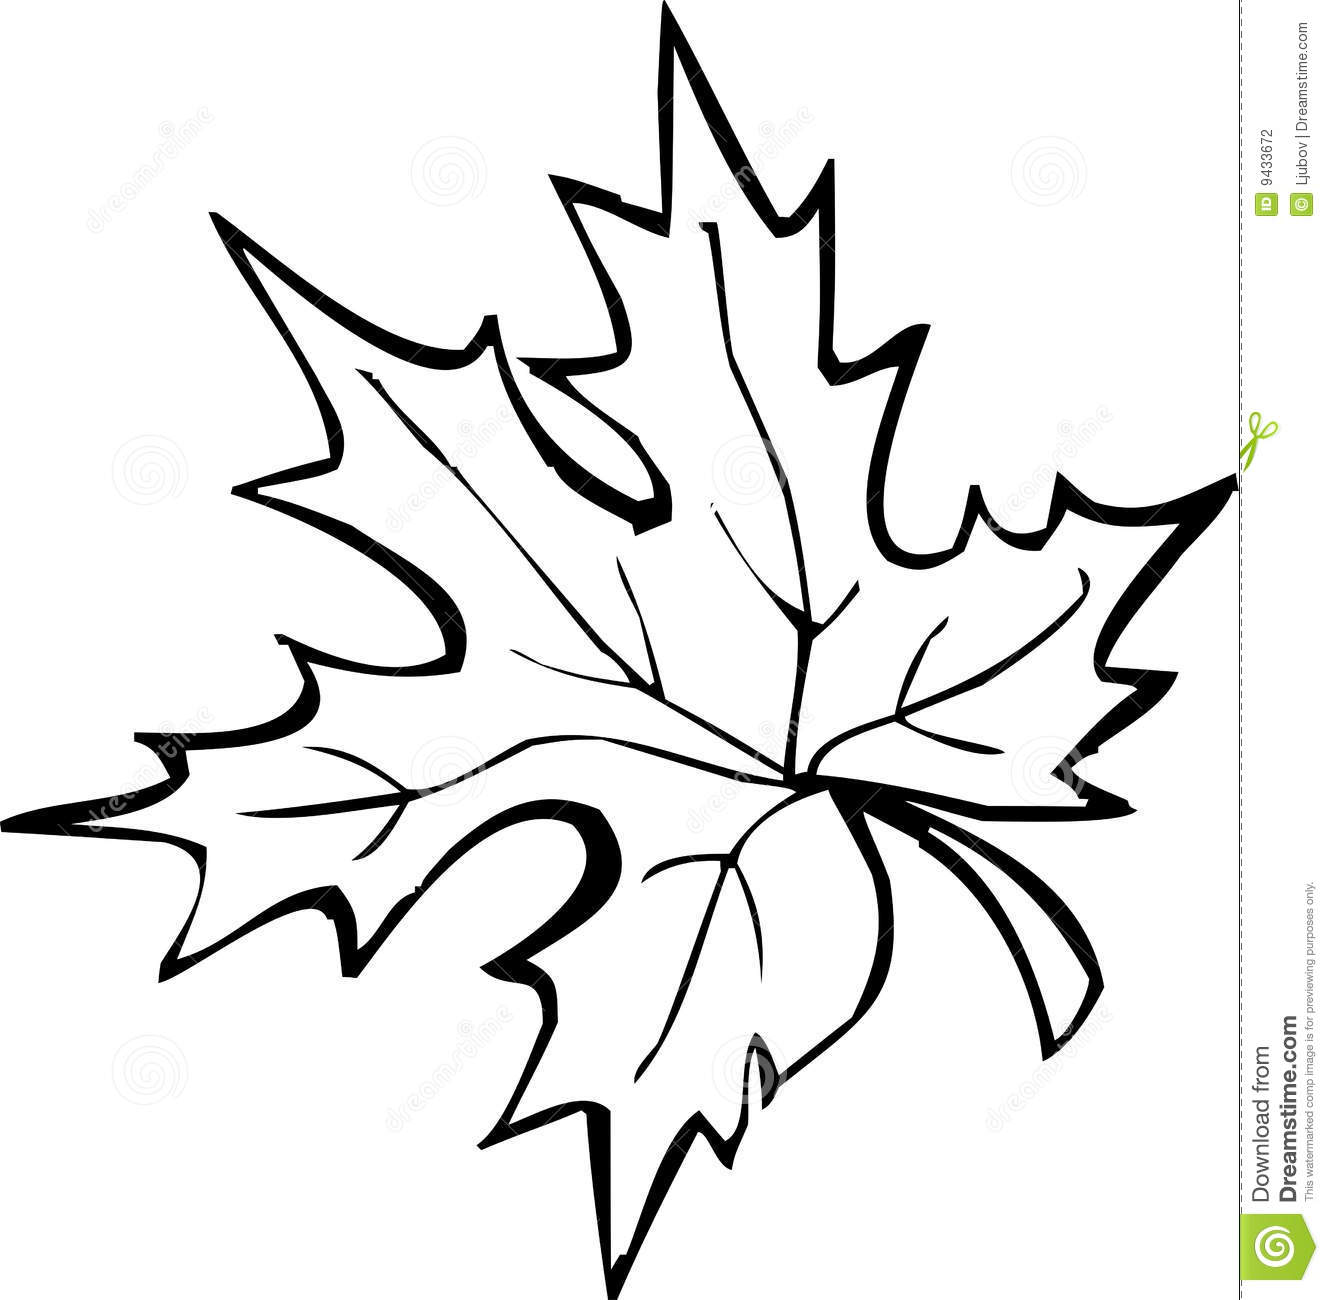 maple leaf clipart black and white clipart panda free clipart images rh clipartpanda com maple leaf clip art black and white fall leaf clip art black and white